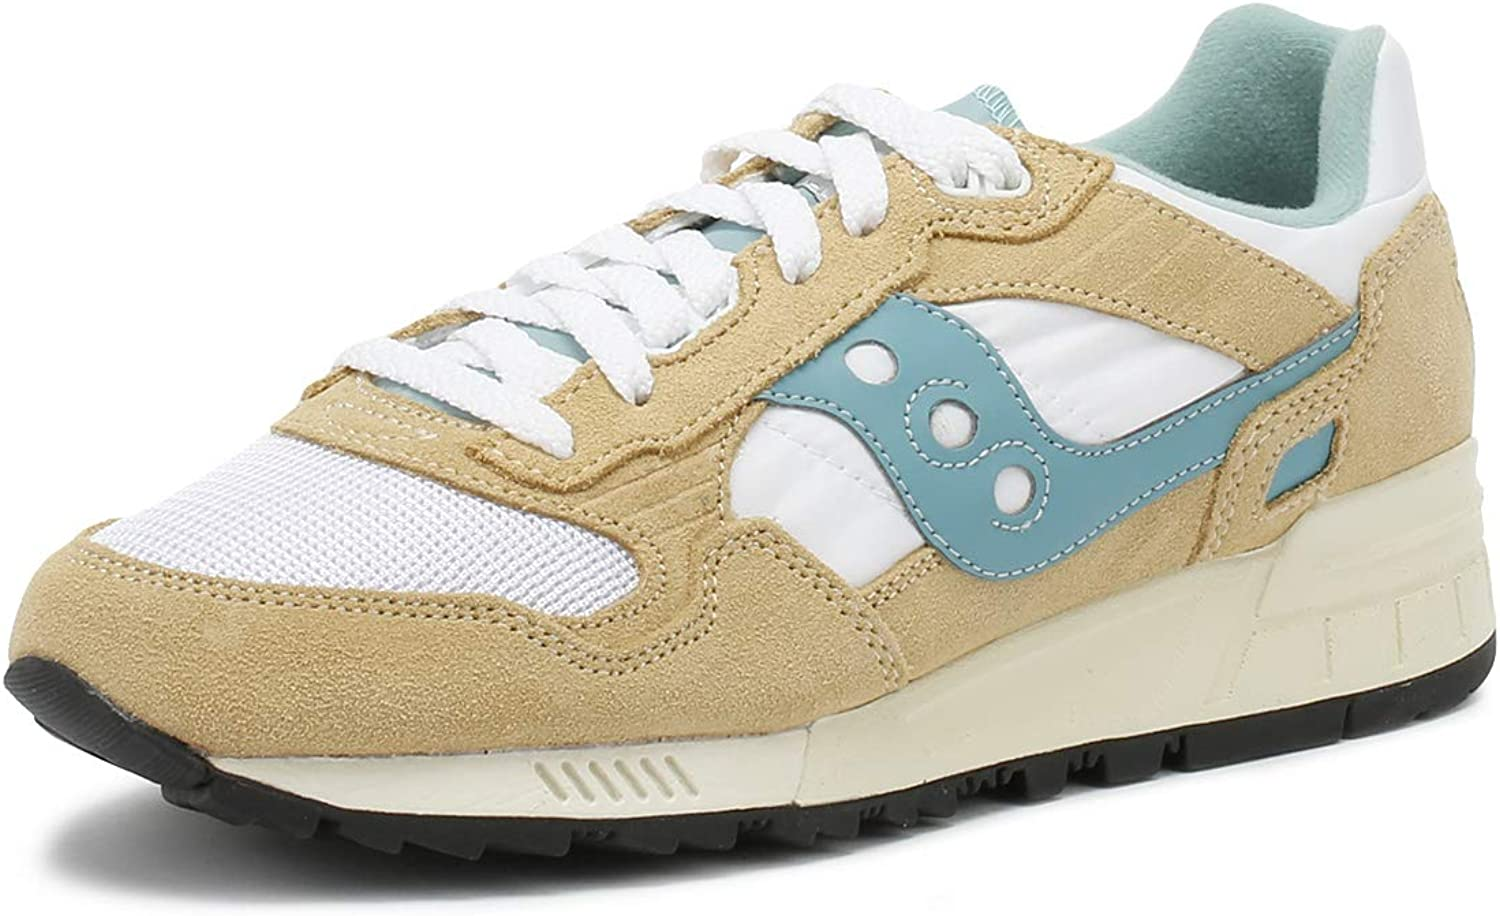 Saucony Shadow 5000 Vintage W shoes